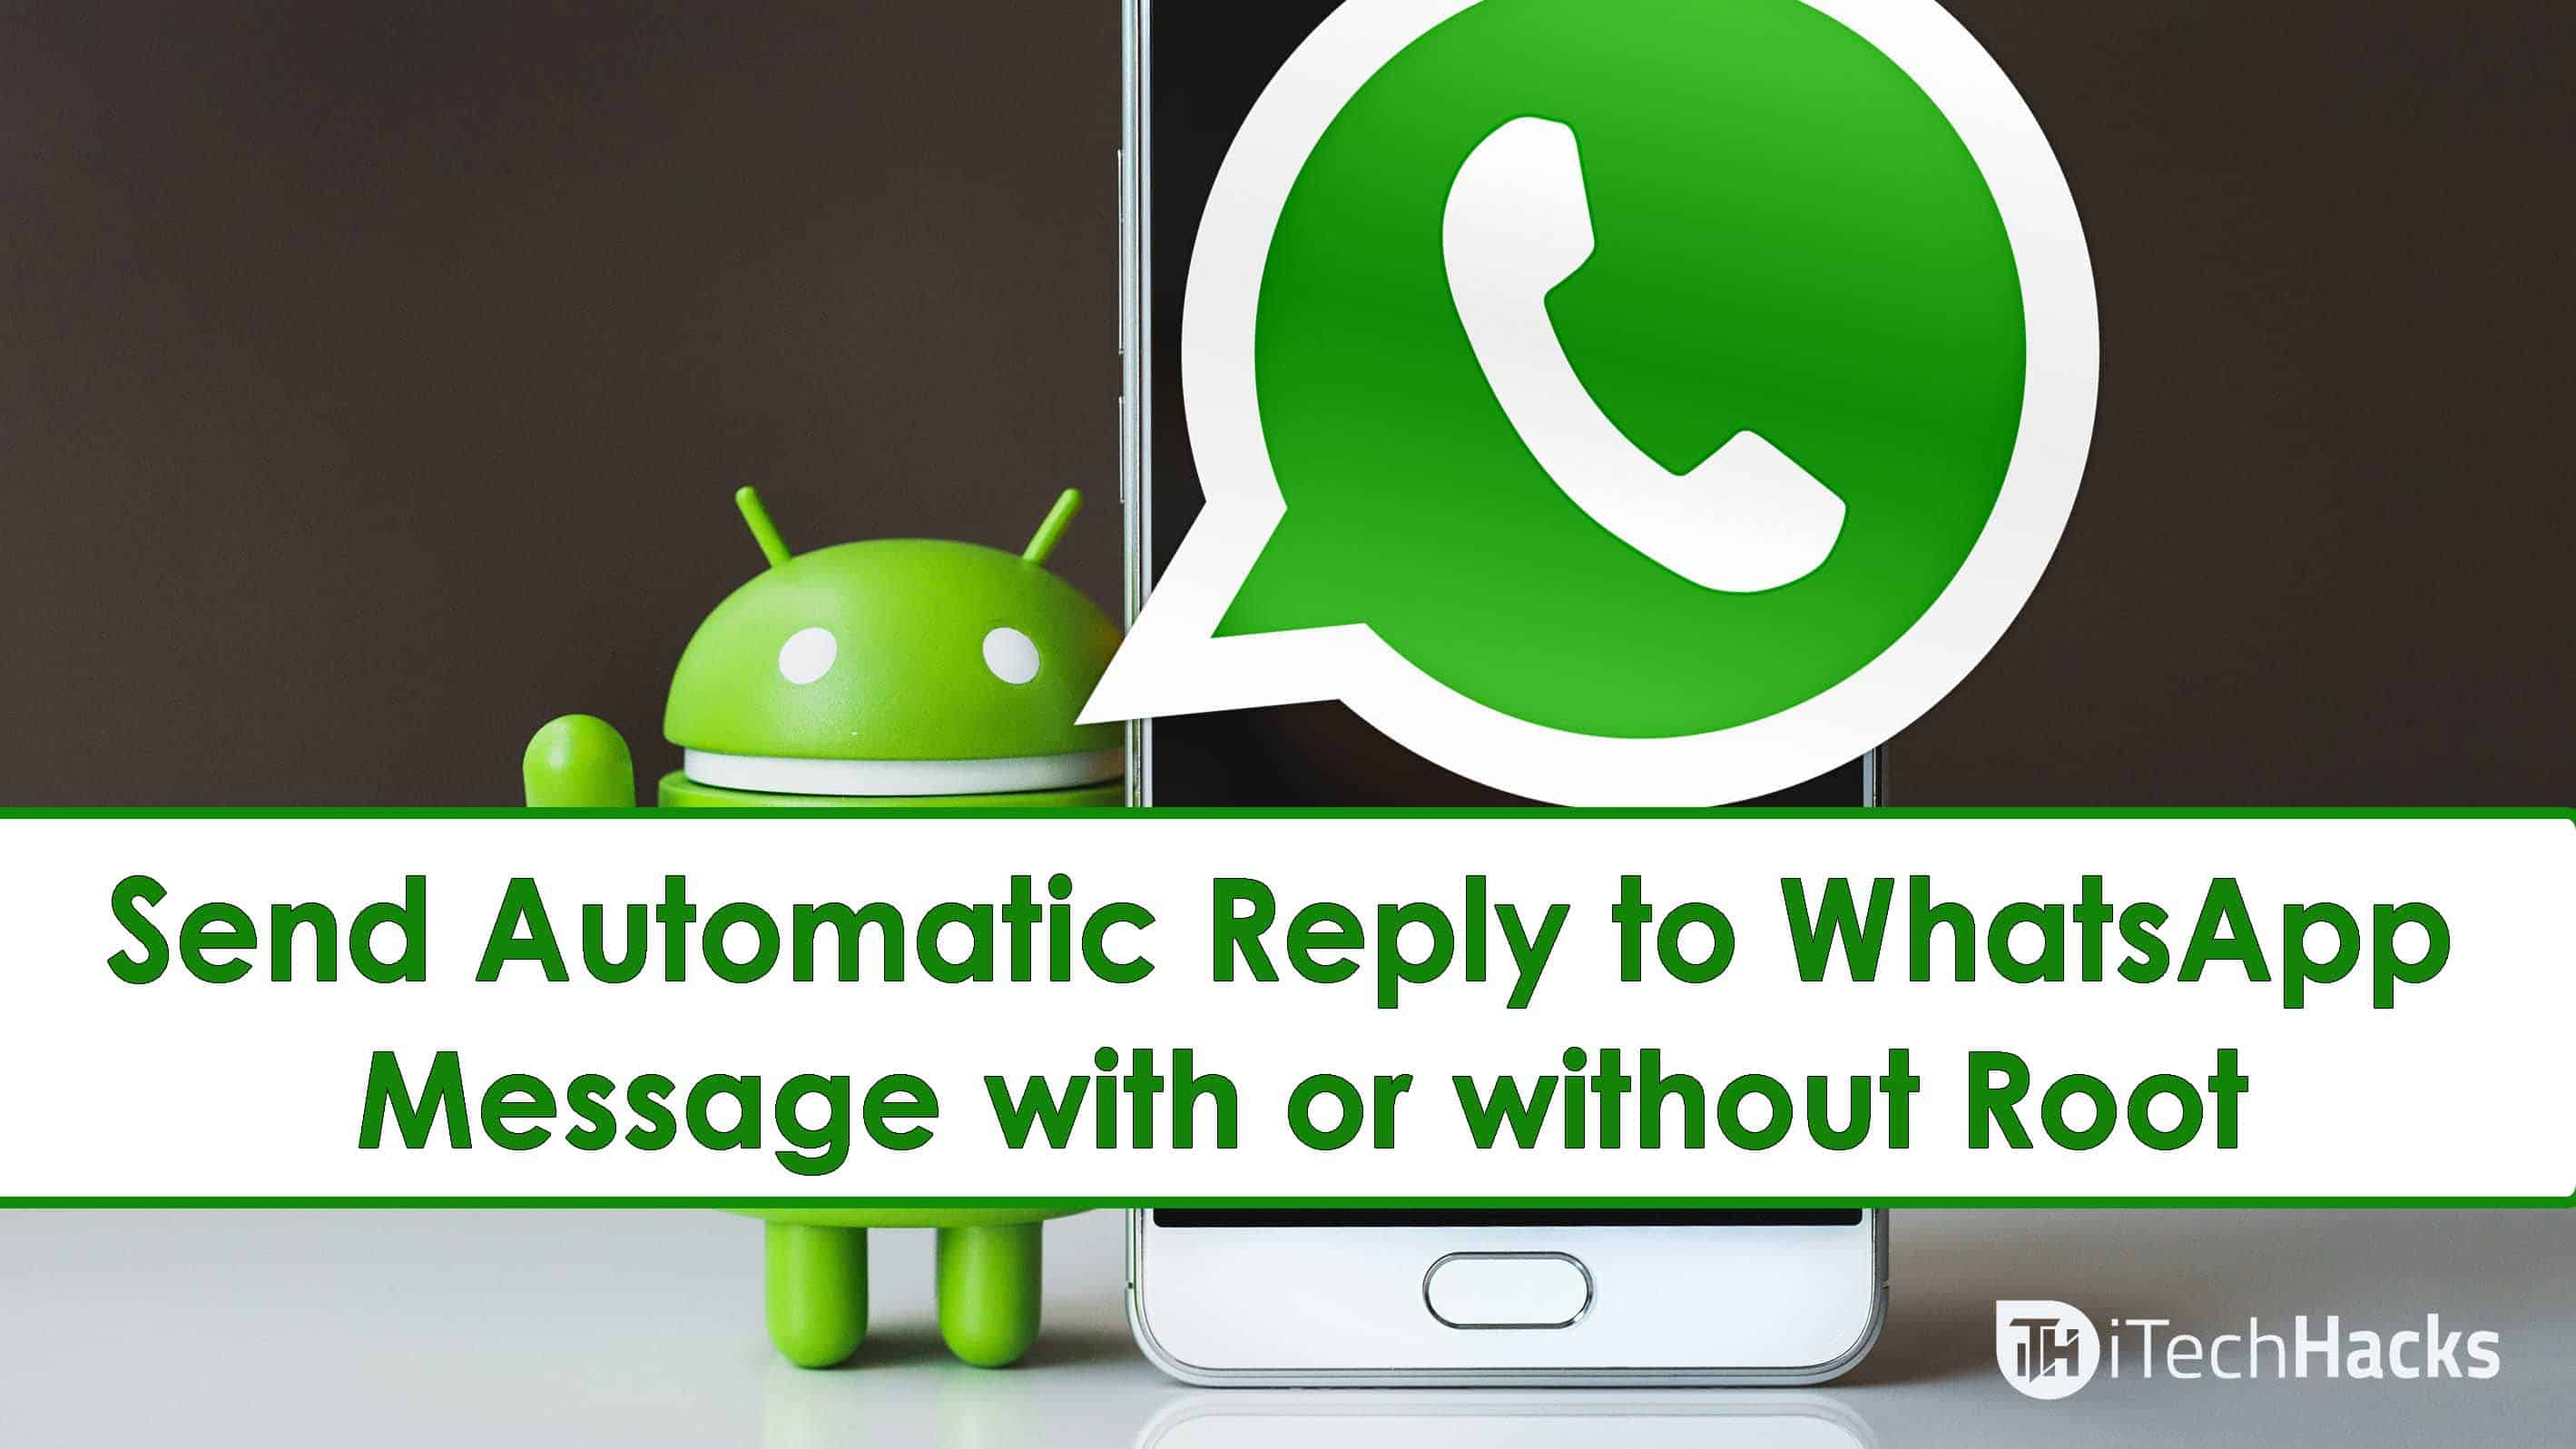 How To Send Automatic Reply to WhatsApp Message [Without ROOT